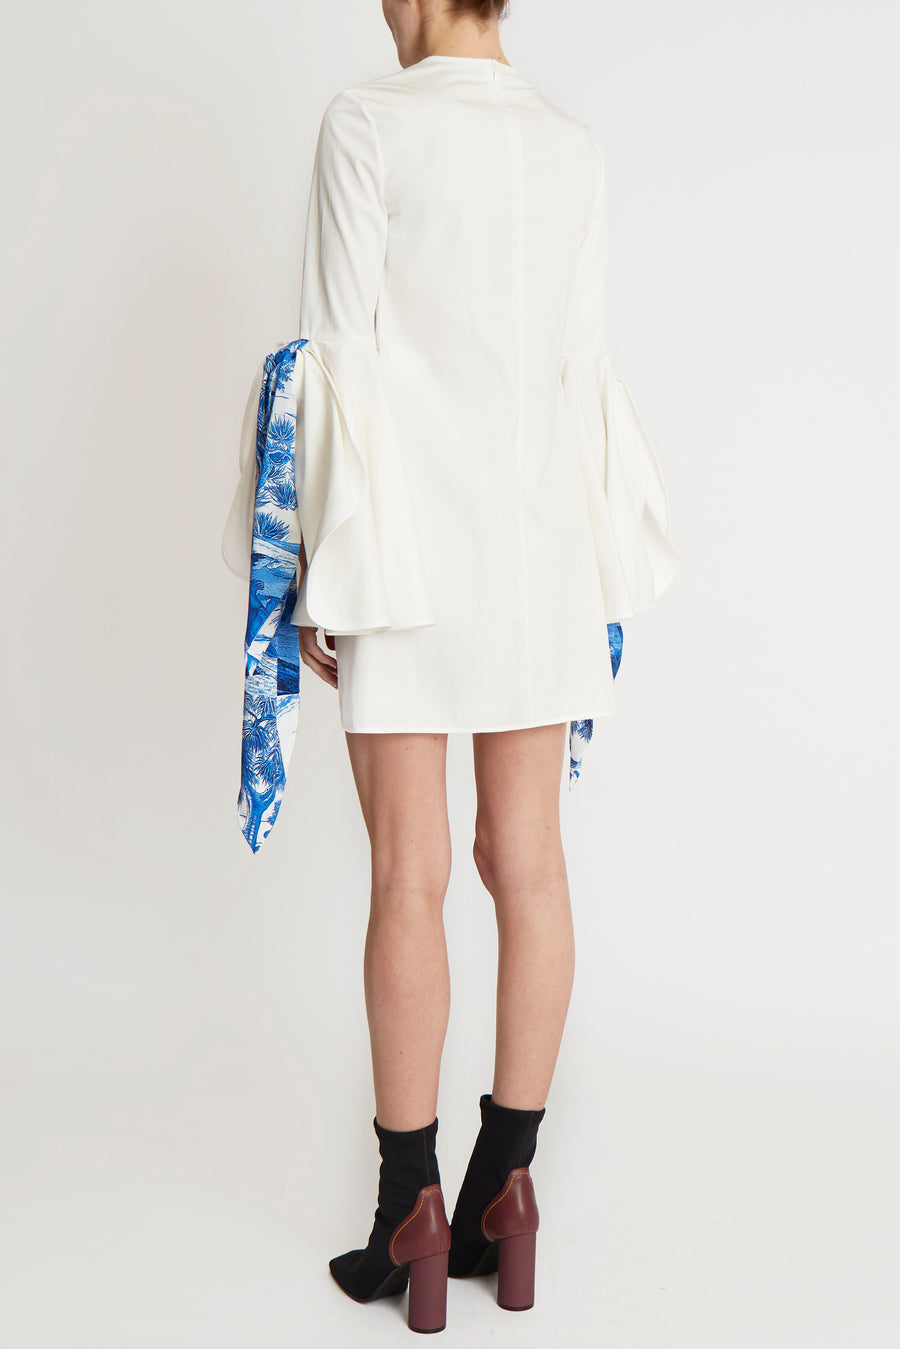 Dogmatism Scarf Flare Dress White